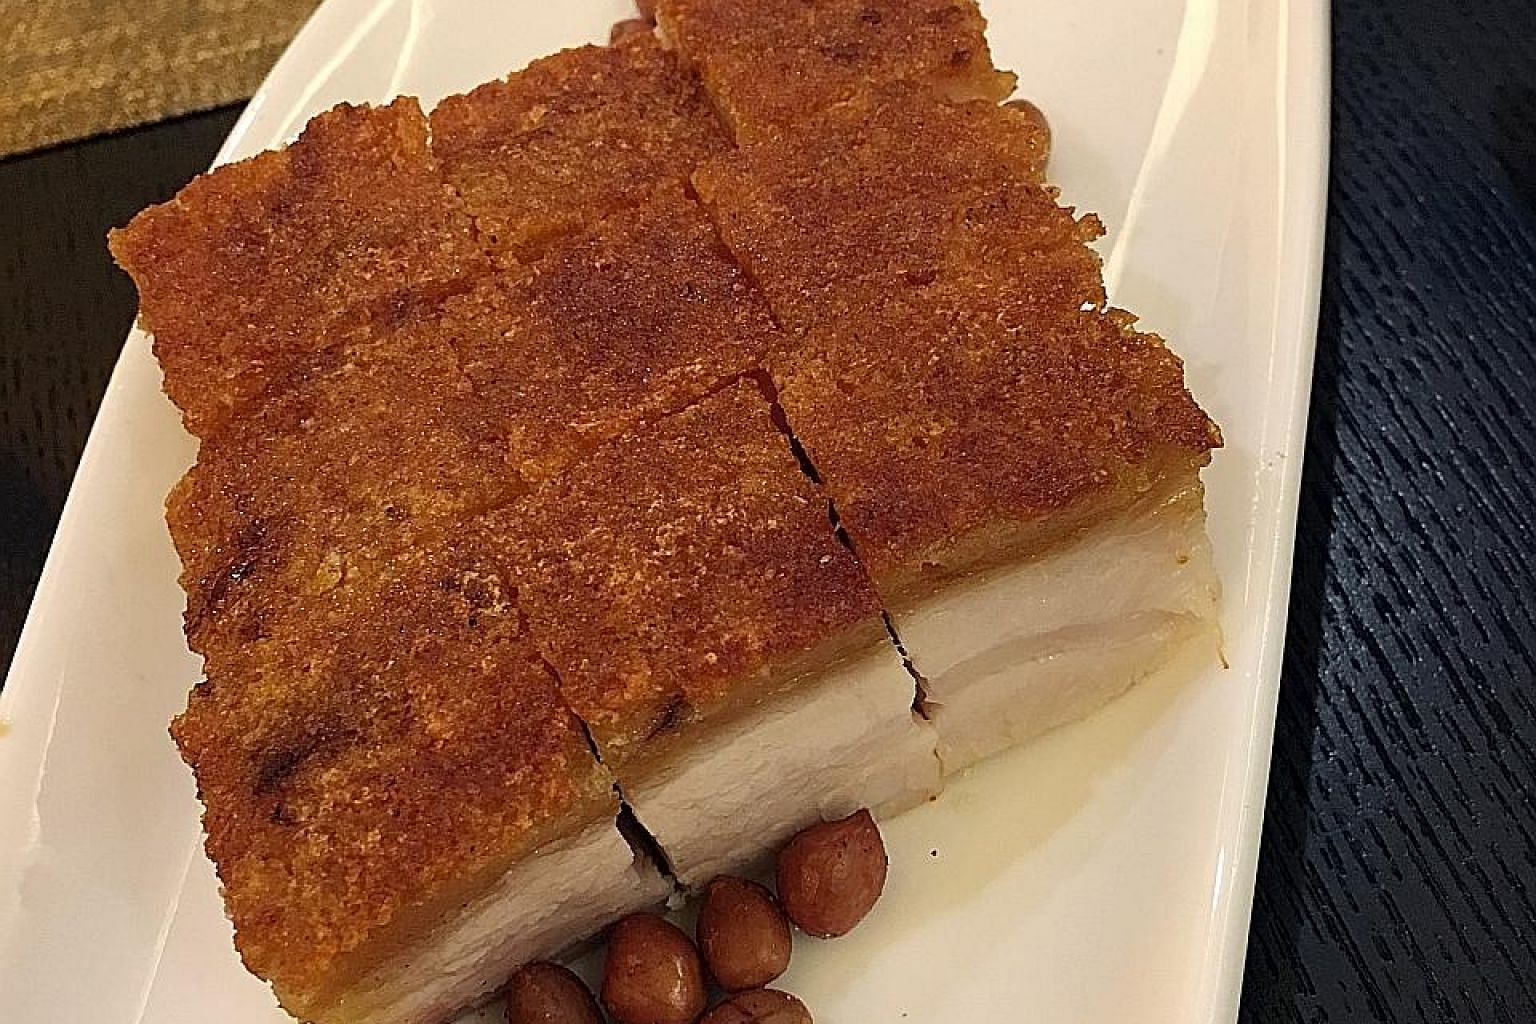 The Golden Crispy BBQ Pork Belly (above) has a delightfully crispy crackling; and the Chengdu Oil Boiled Fatty Beef is tongue- numbingly spicy and aromatic.